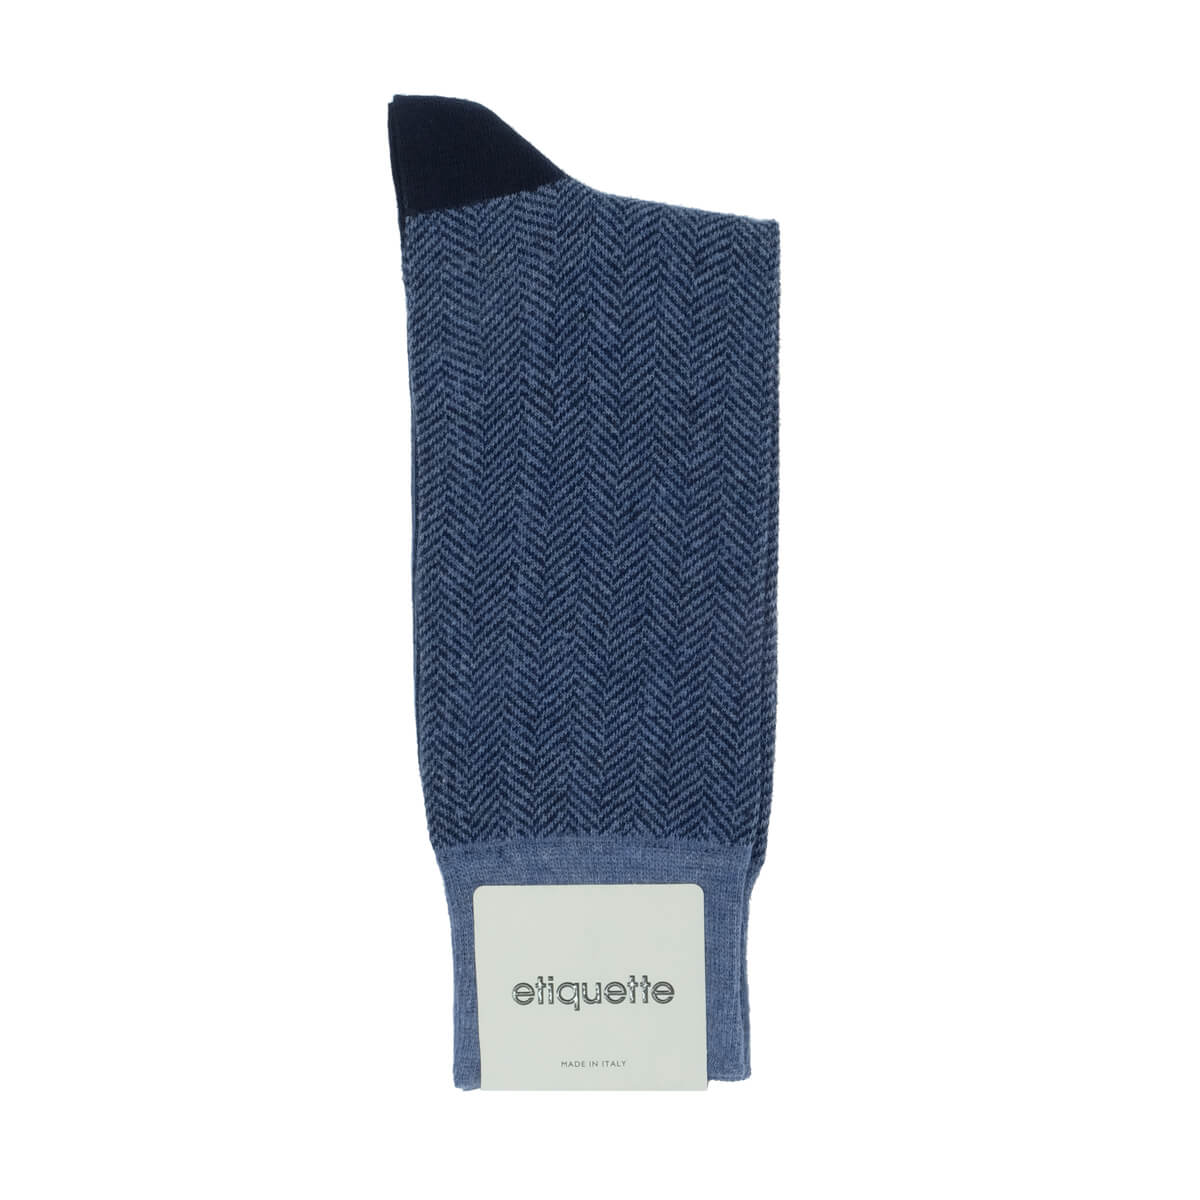 Mens Socks - Herring With A Bone - Blue⎪Etiquette Clothiers